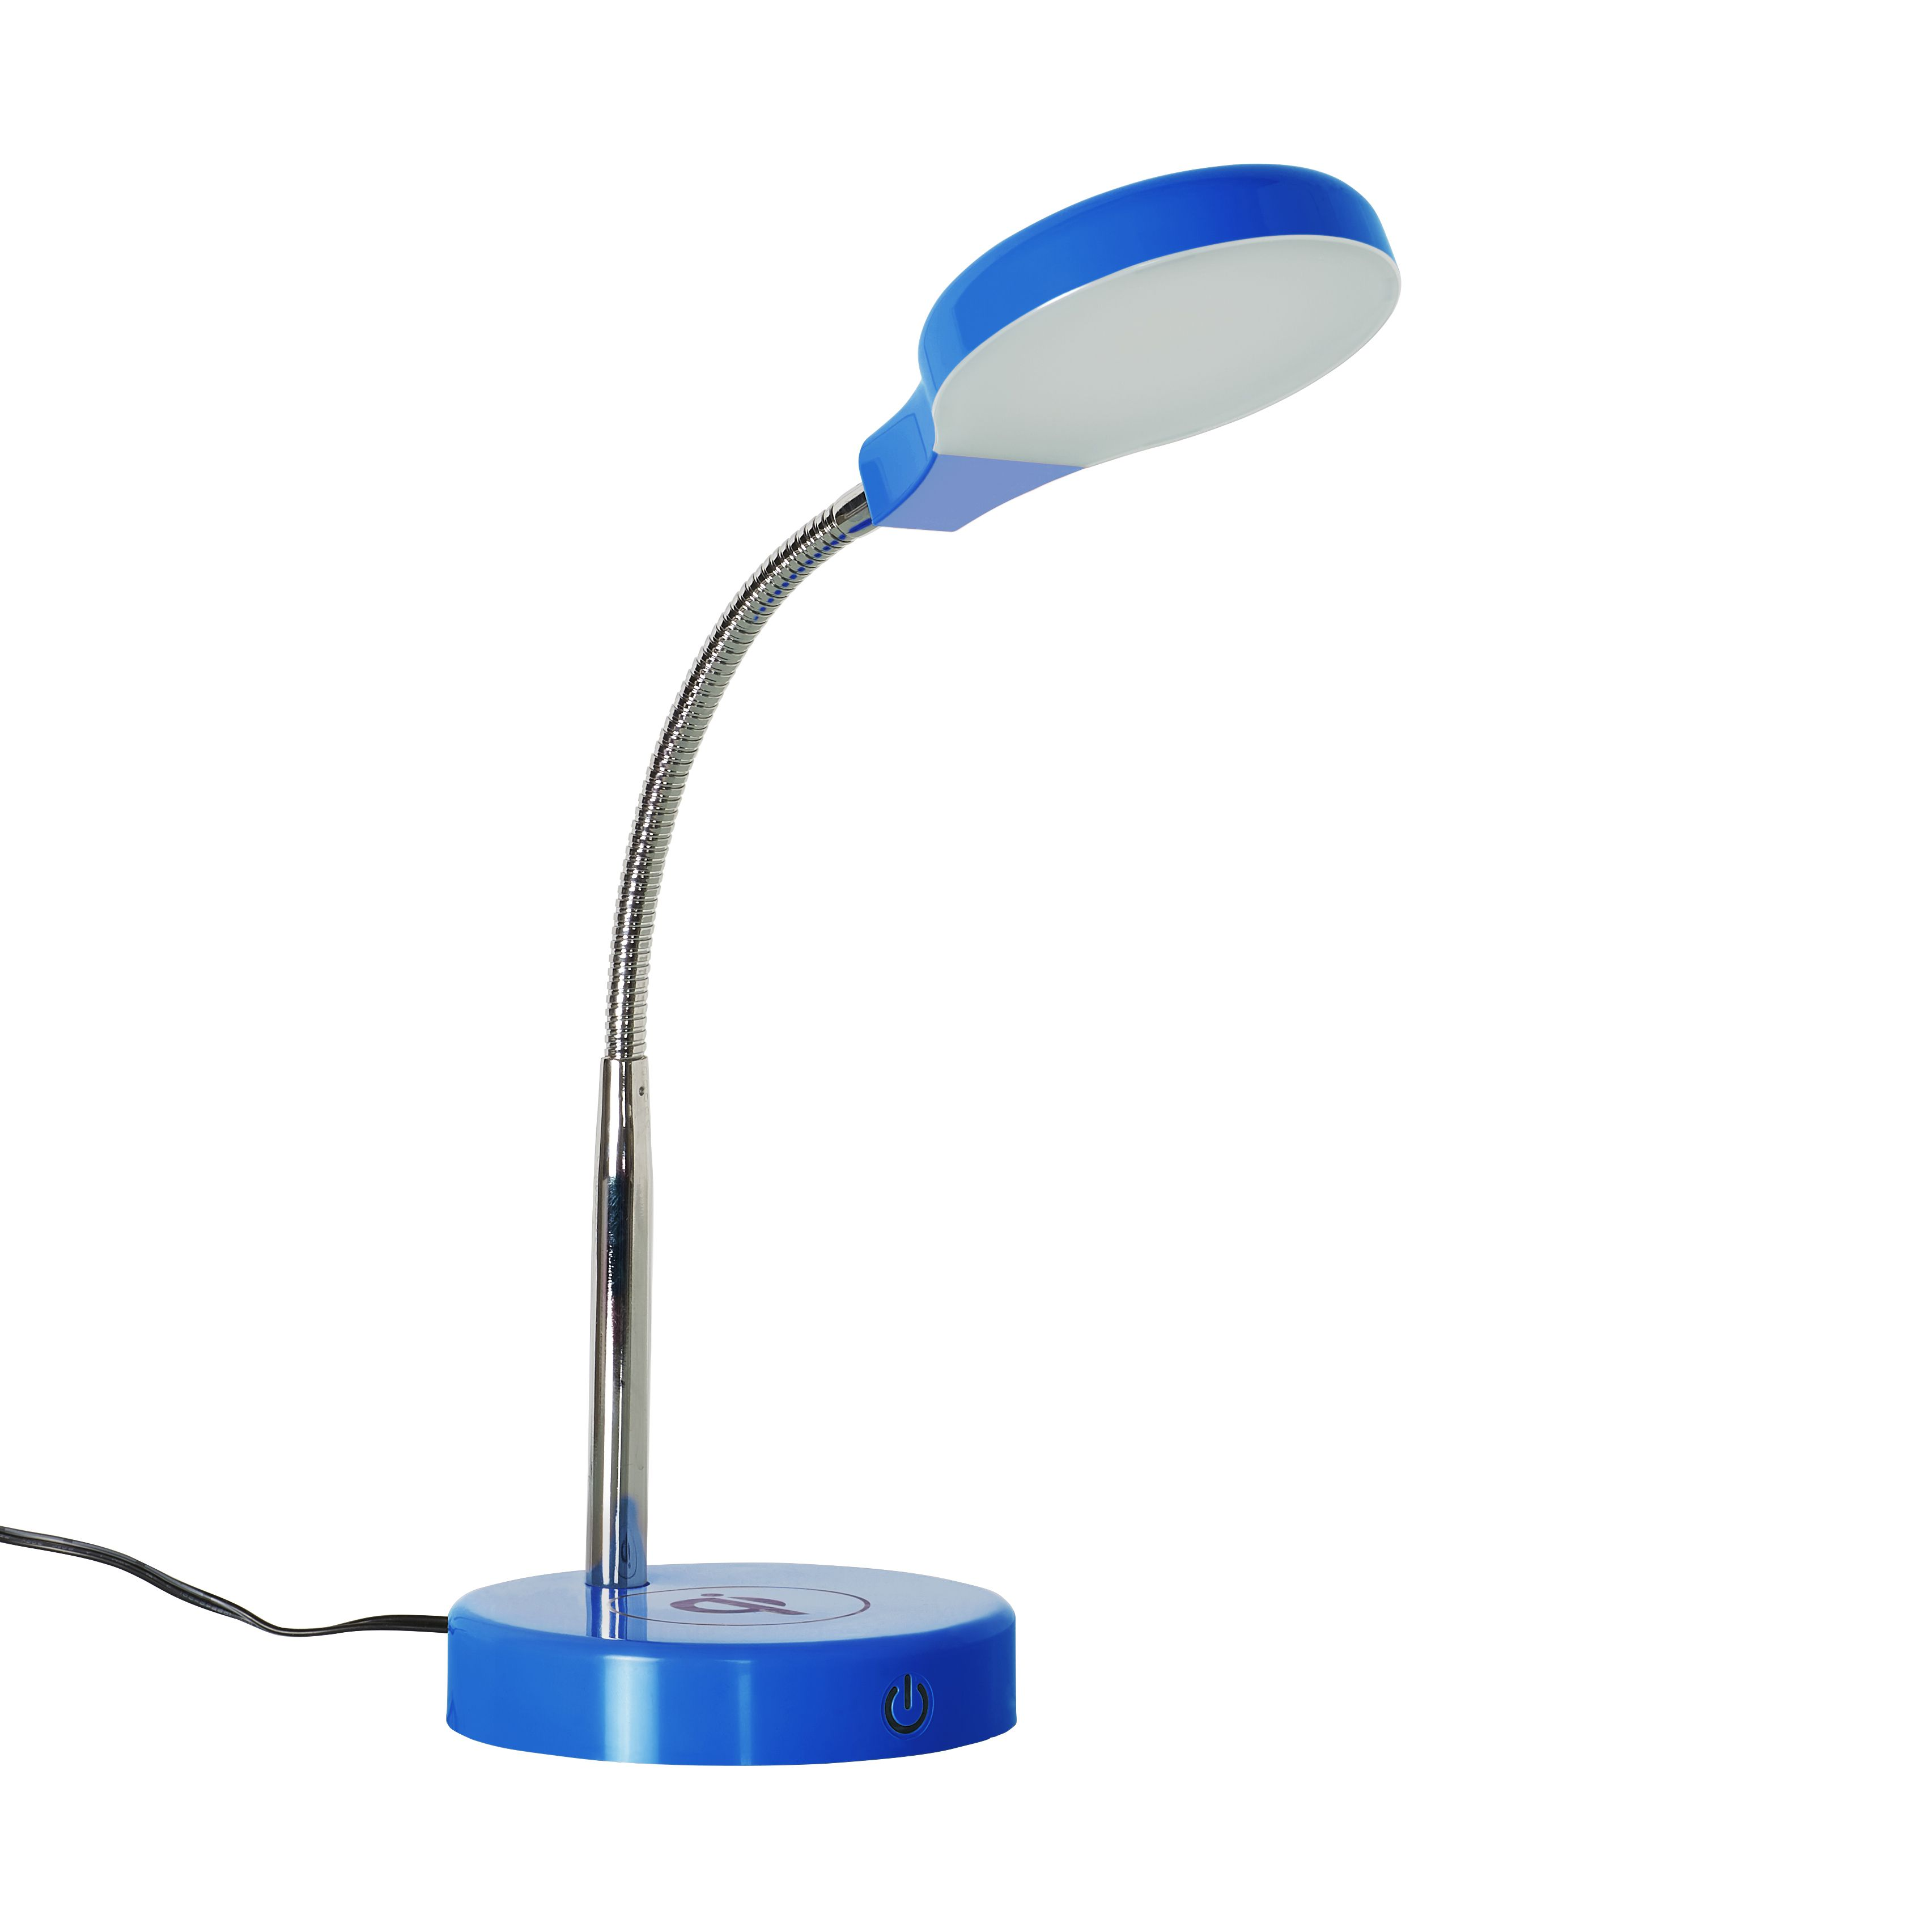 Mainstays Led Desk Lamp With Qi Wireless Charging And Usb Port Desk Lamp Mainstays Desk Lamp Led Desk Lamp Lamp